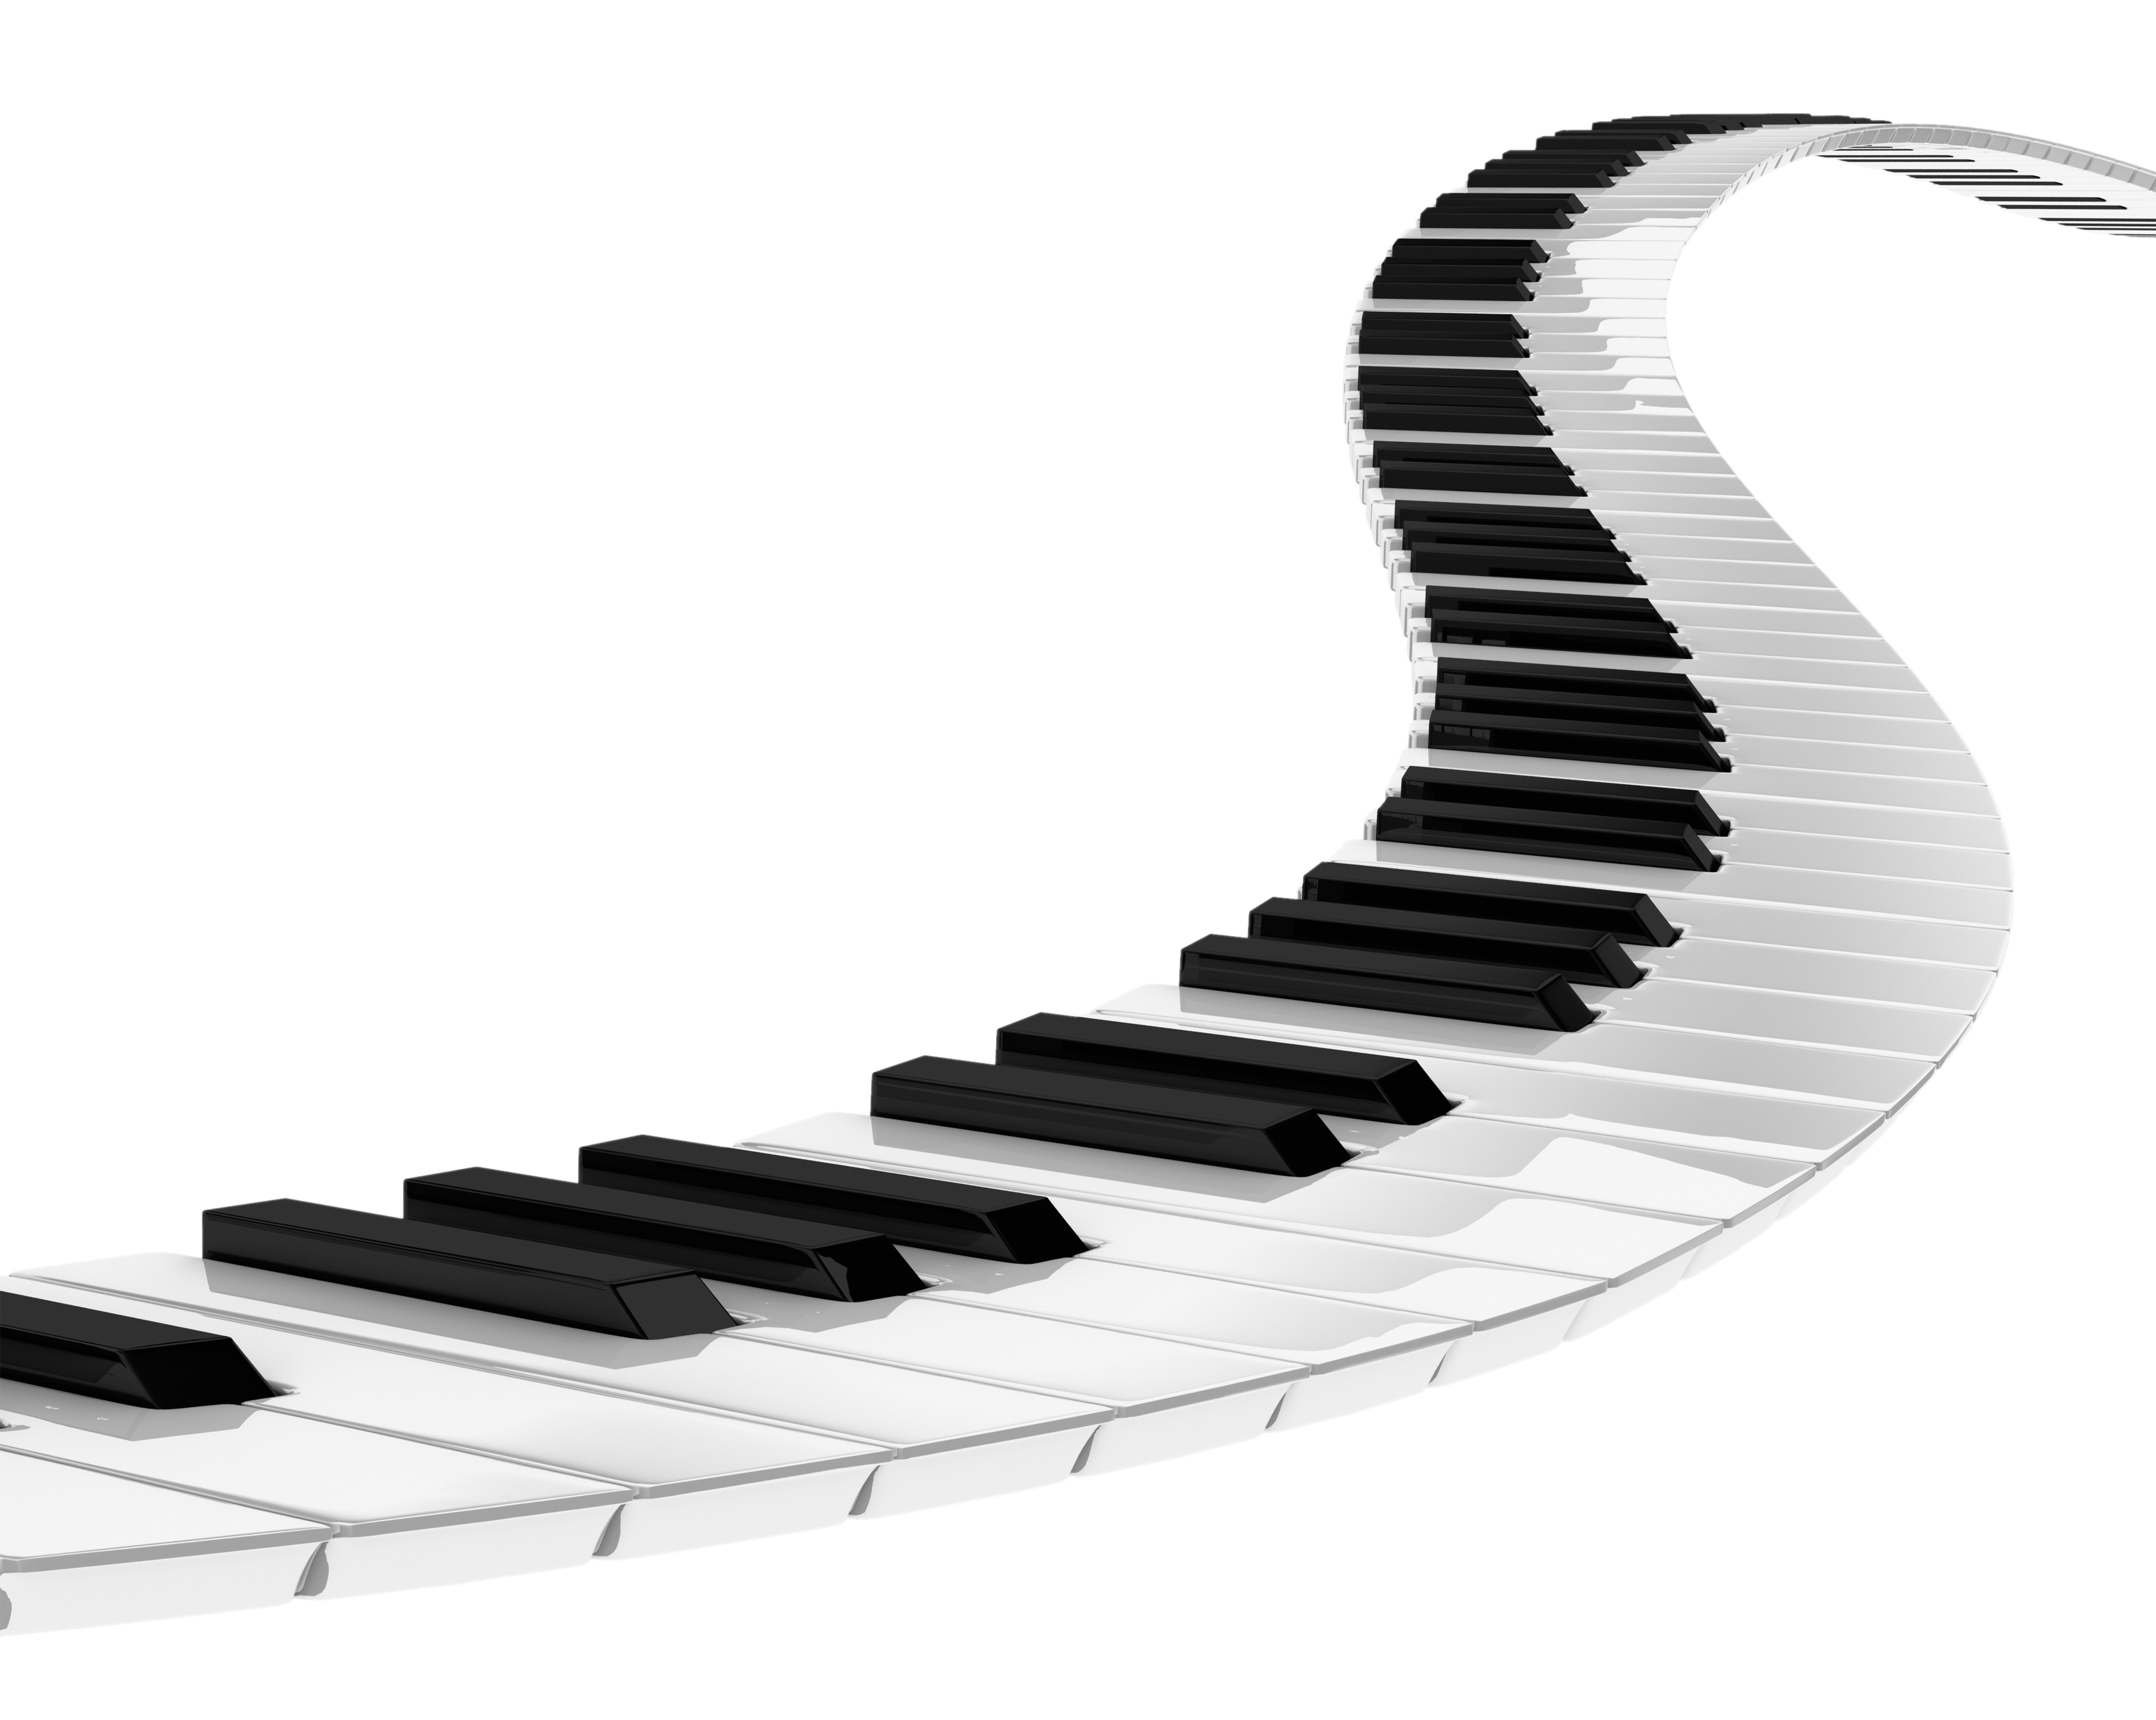 Keyboard clipart piano man. Free frames cliparts download